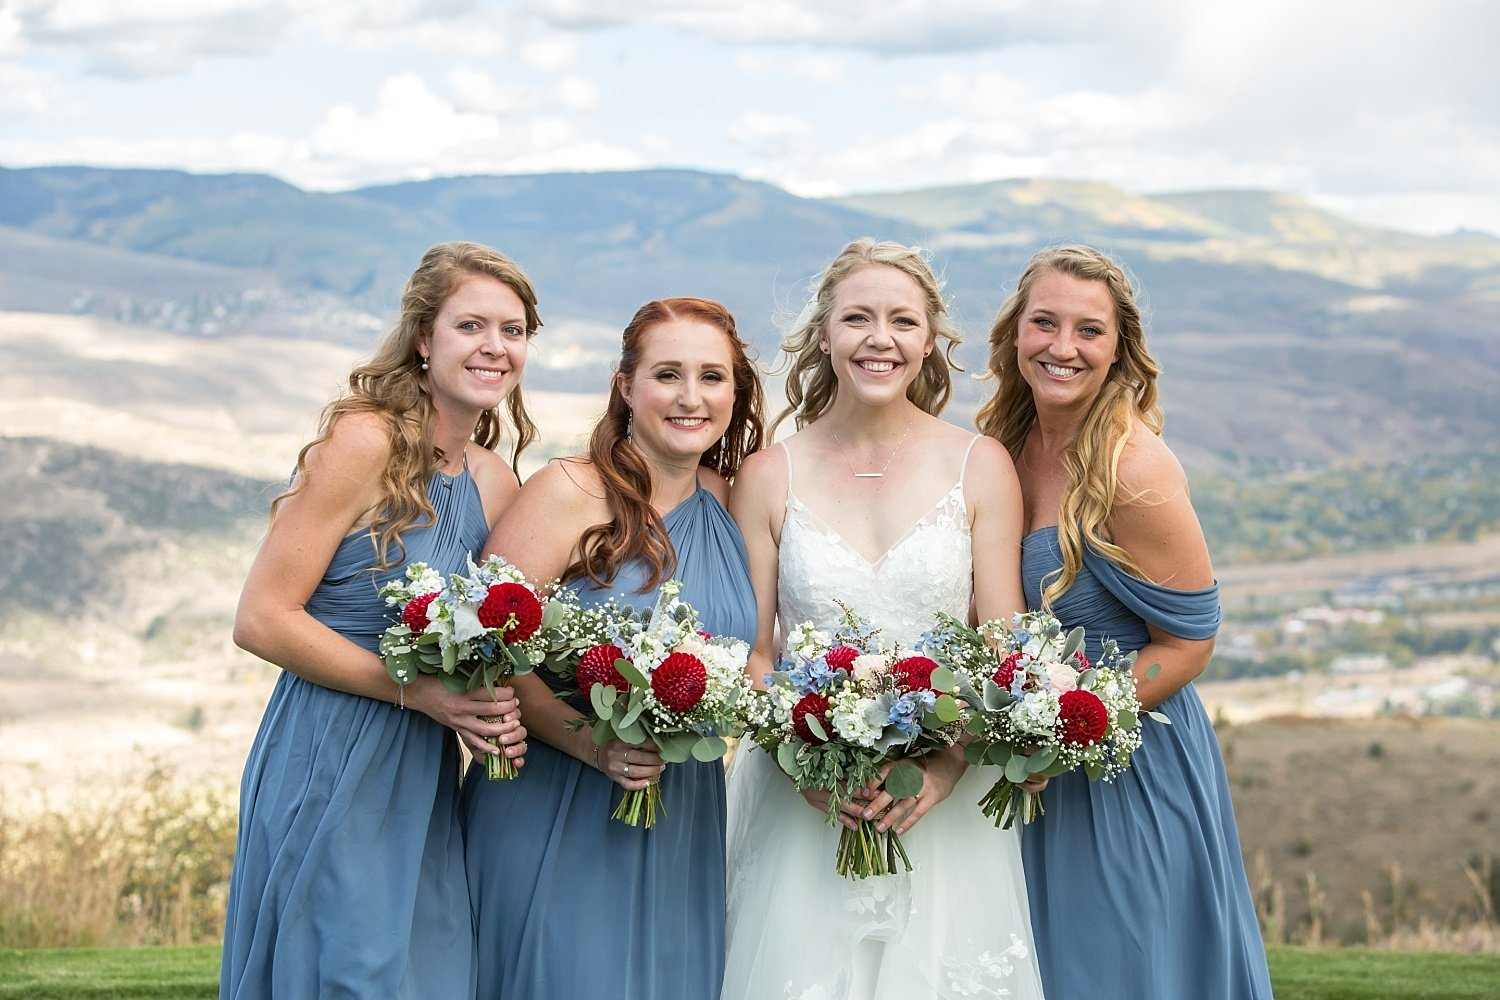 bridesmaids portrait in the mountains